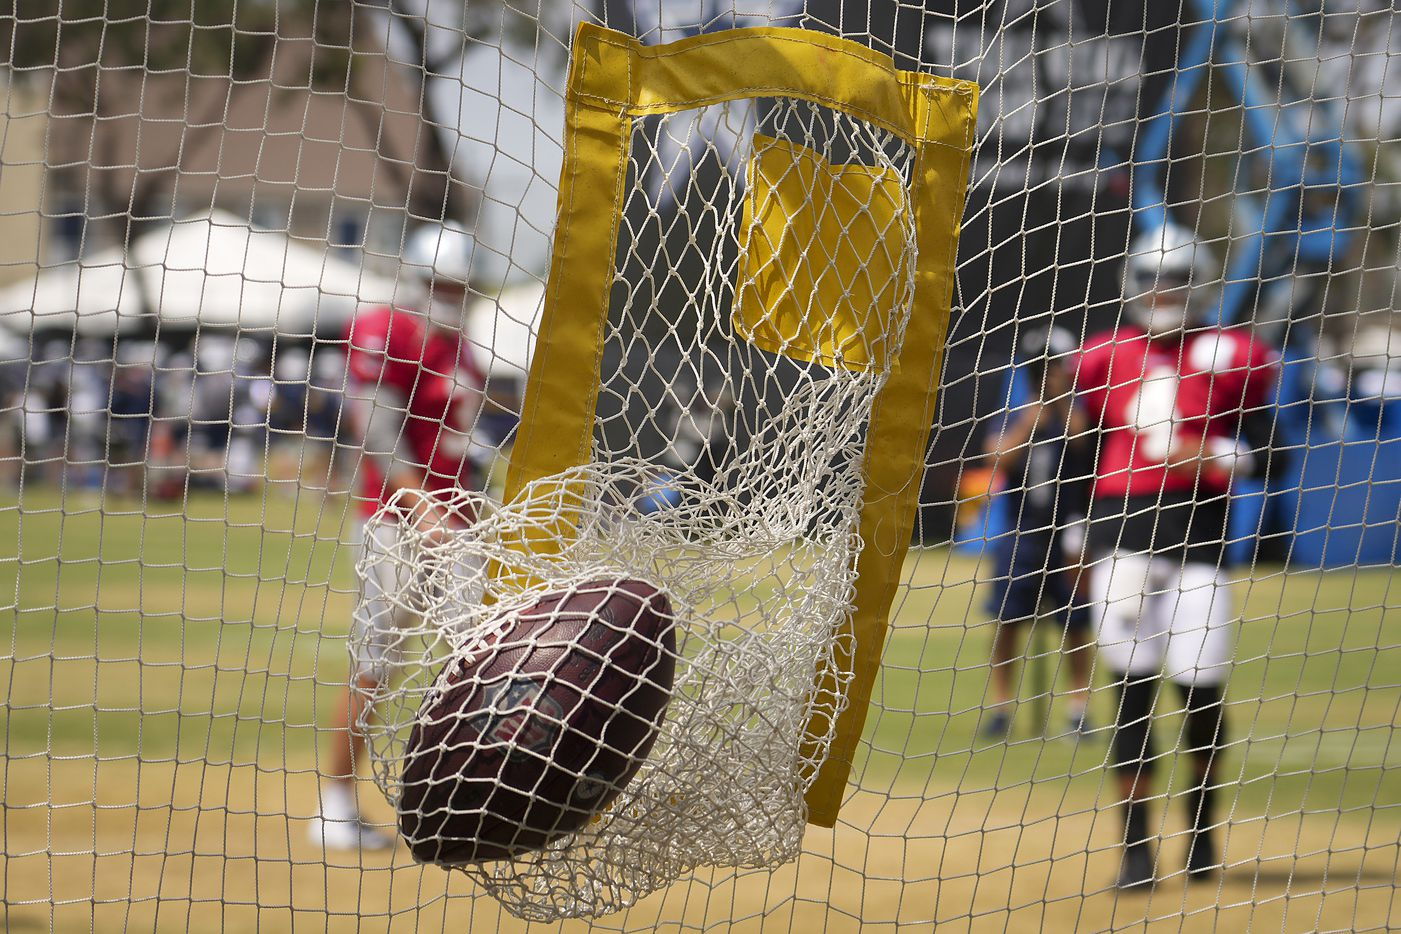 Dallas Cowboys quarterback Dak Prescott hits a target with a pass in a drill during a practice at training camp on Wednesday, Aug. 11, 2021, in Oxnard, Calif.